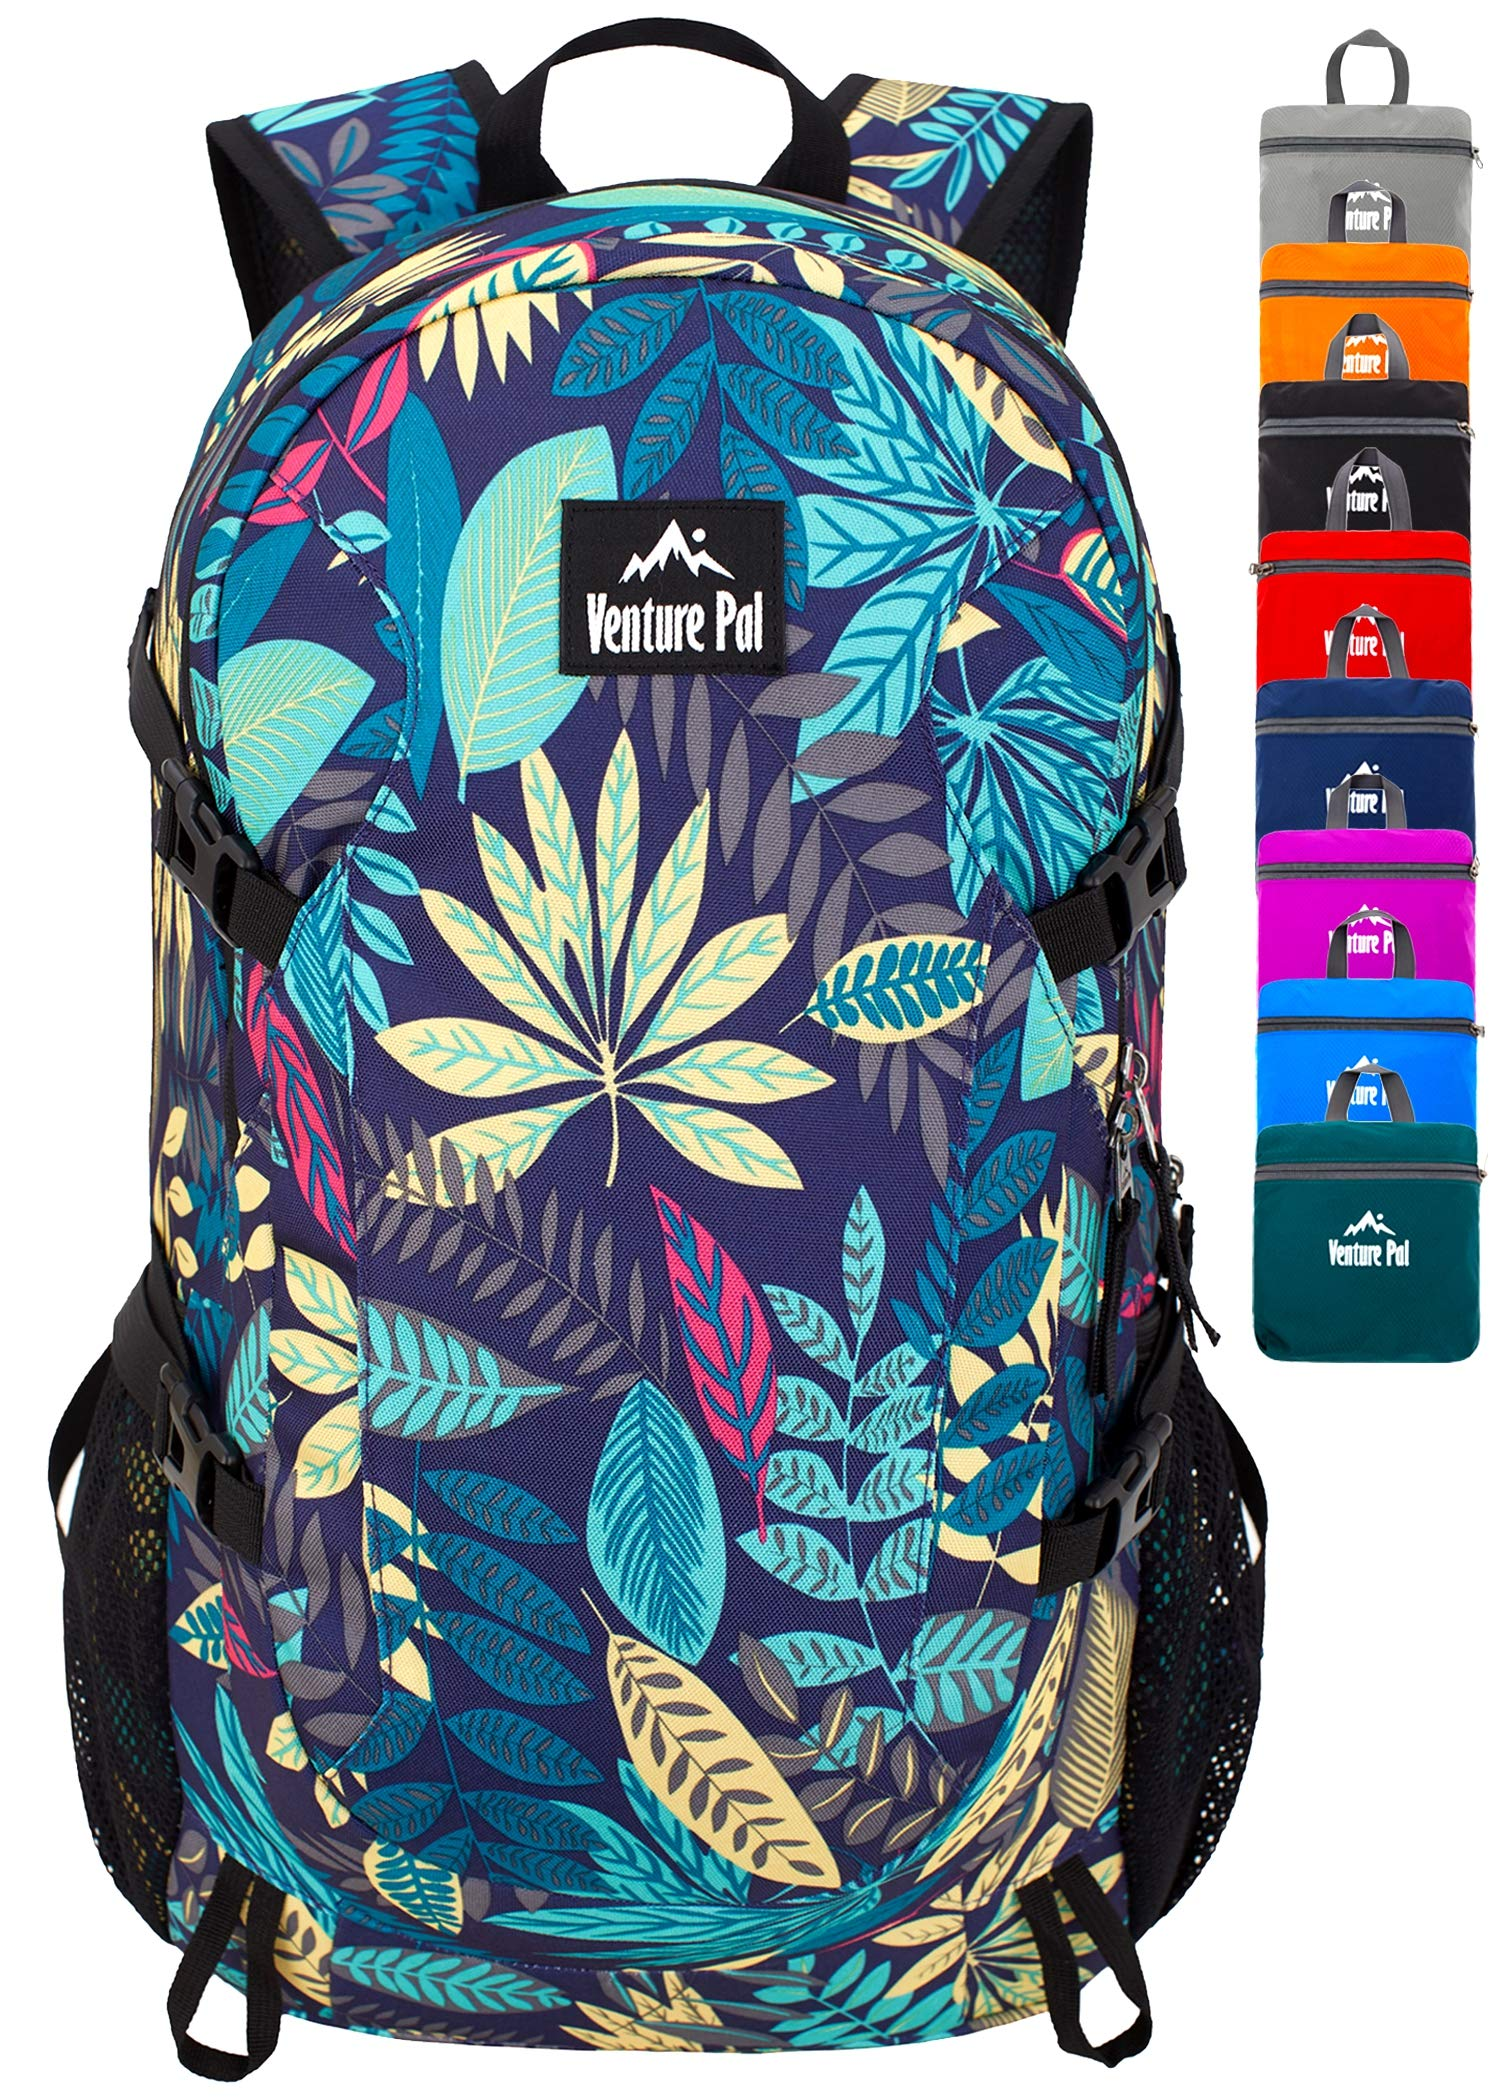 Venture Pal 40L Lightweight Packable Backpack with Wet Pocket - Durable Waterproof Travel Hiking Camping Outdoor Daypack for Women Men-Purple Leaf by Venture Pal